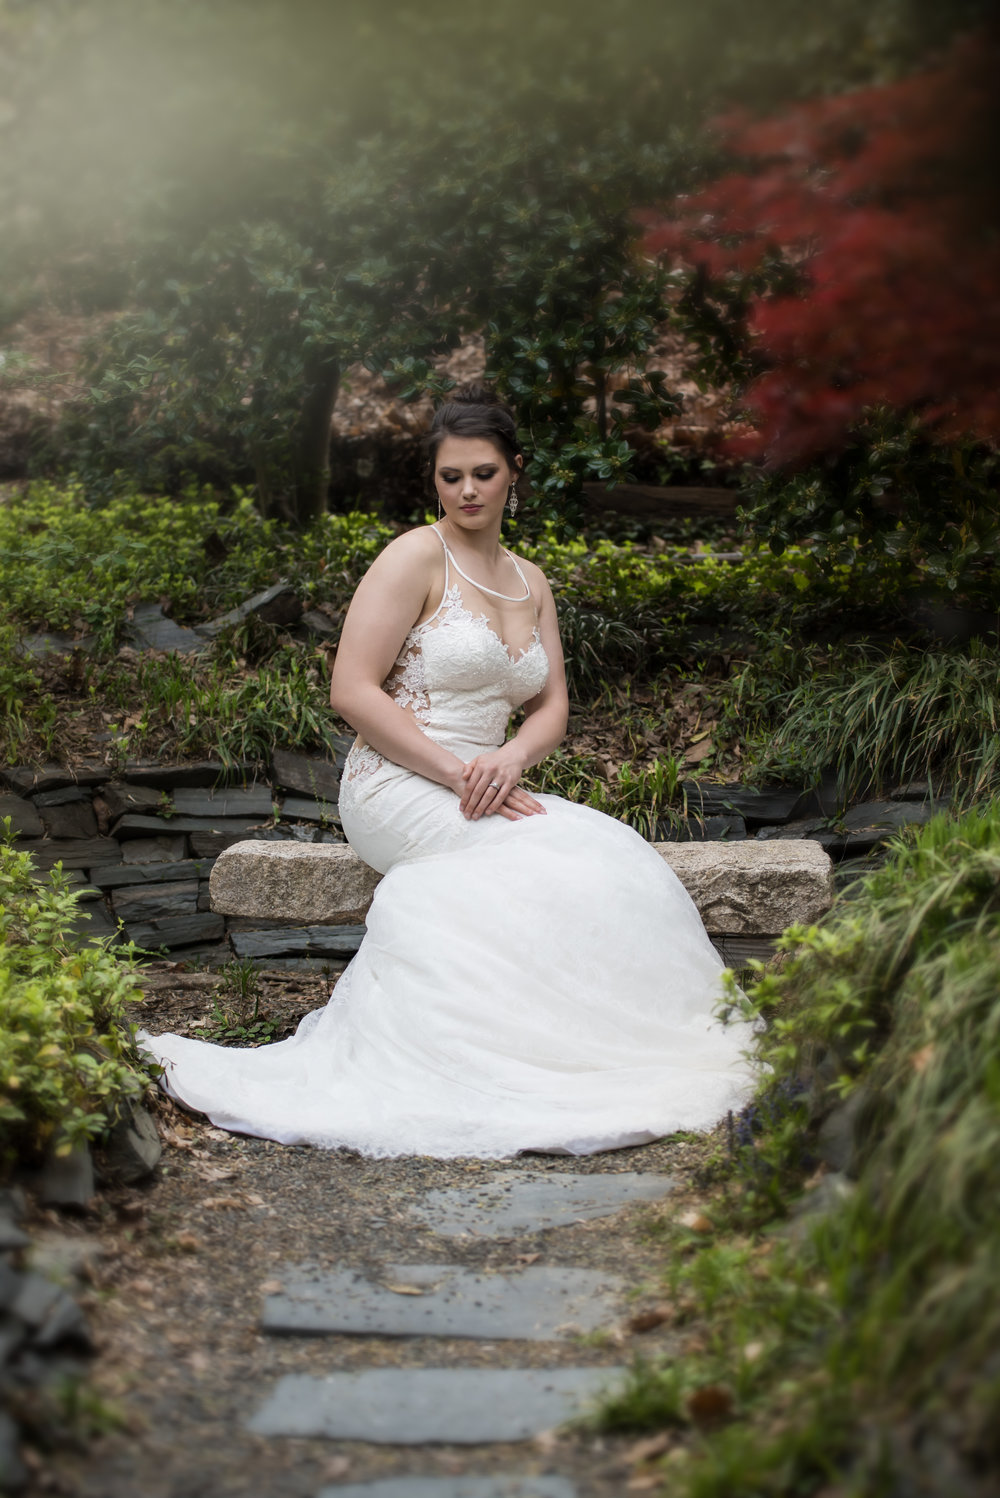 - Most recently, We captured an amazing bridal session in the gardens and couldn't be more happy with the results. The natural foliage adds so much to the beauty of these photos.   We'd love to photograph you in at the Botanical Gardens of UNCC!